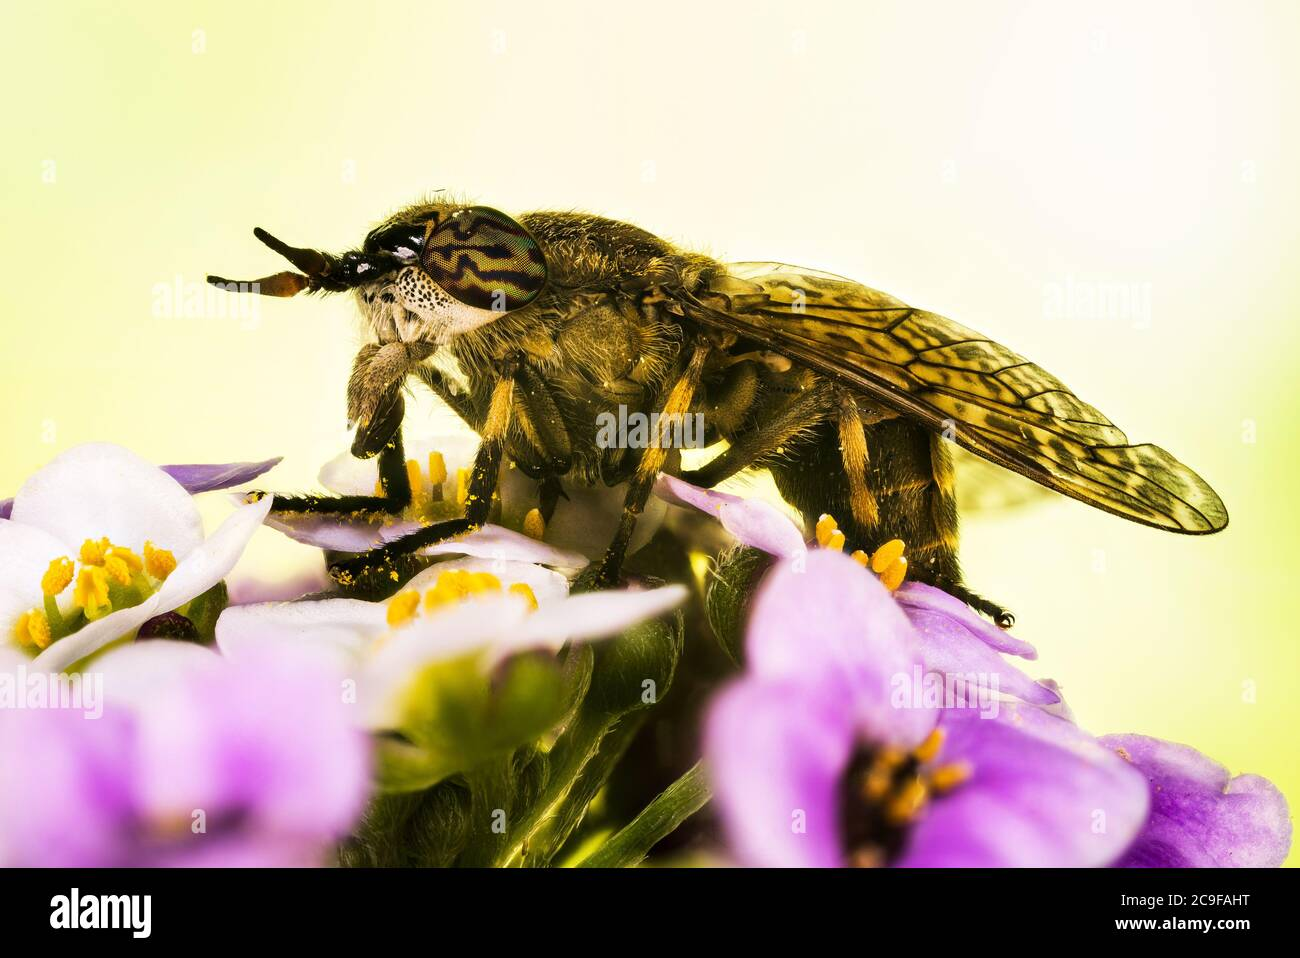 Common Horse Fly or Notch-horned Cleg Fly. Her Latin name is Haematopota pluvialis. Stock Photo